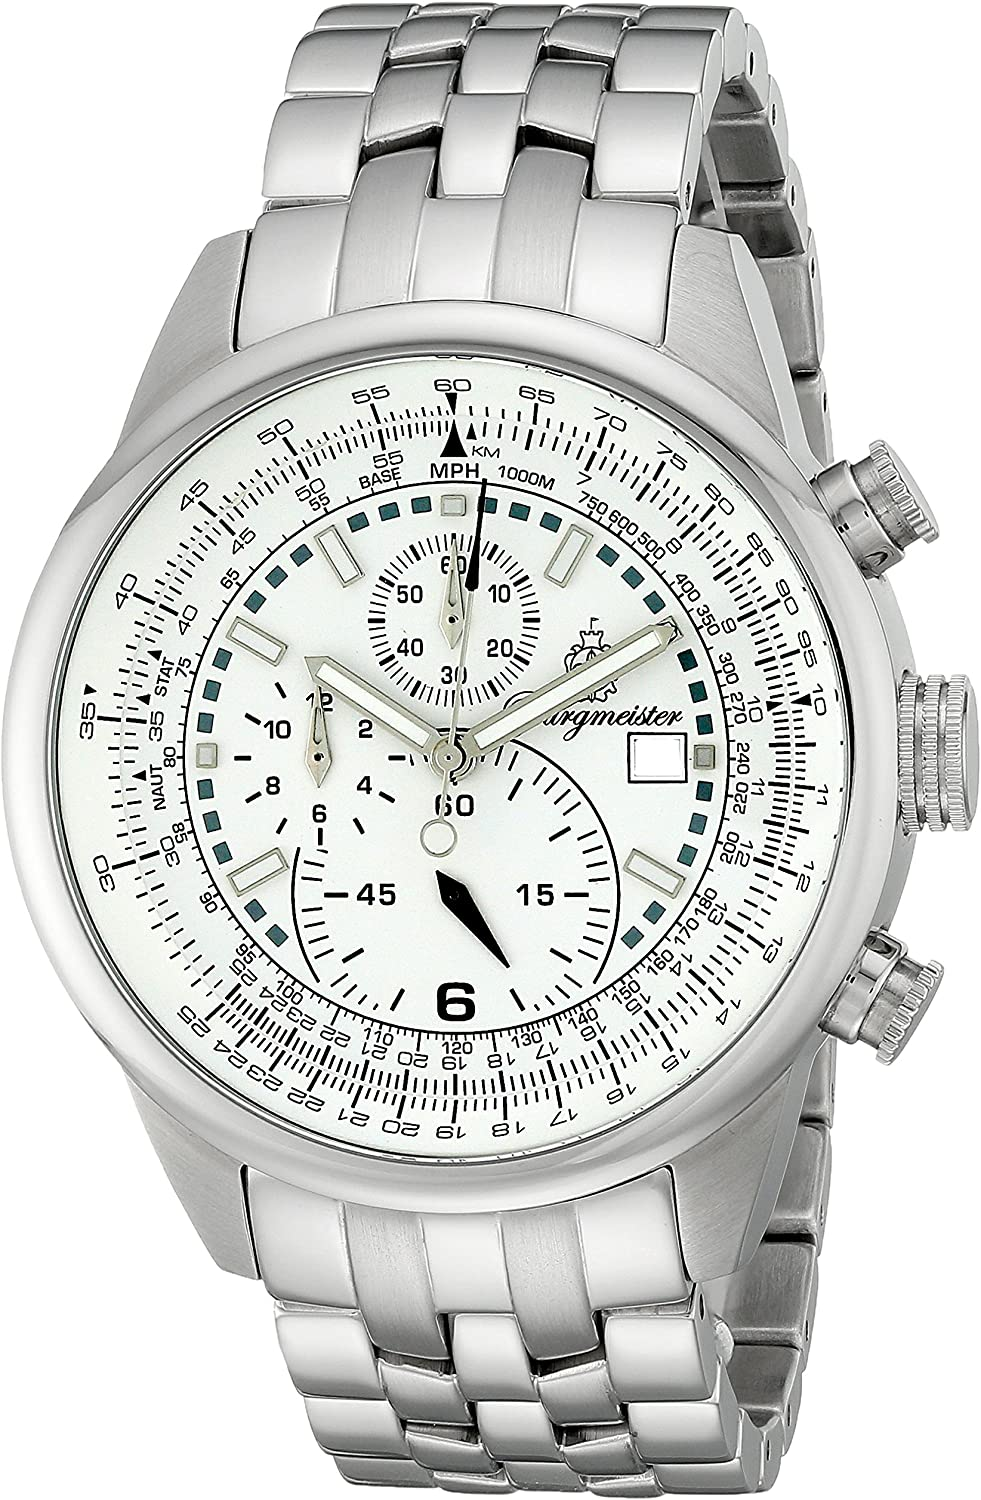 Burgmeister BM505-181 Melbourne, Gents watch, Analogue display, Quartz with Citizen Movement – Water resistant, Stylish stainless steel bracelet, Classic men s watch